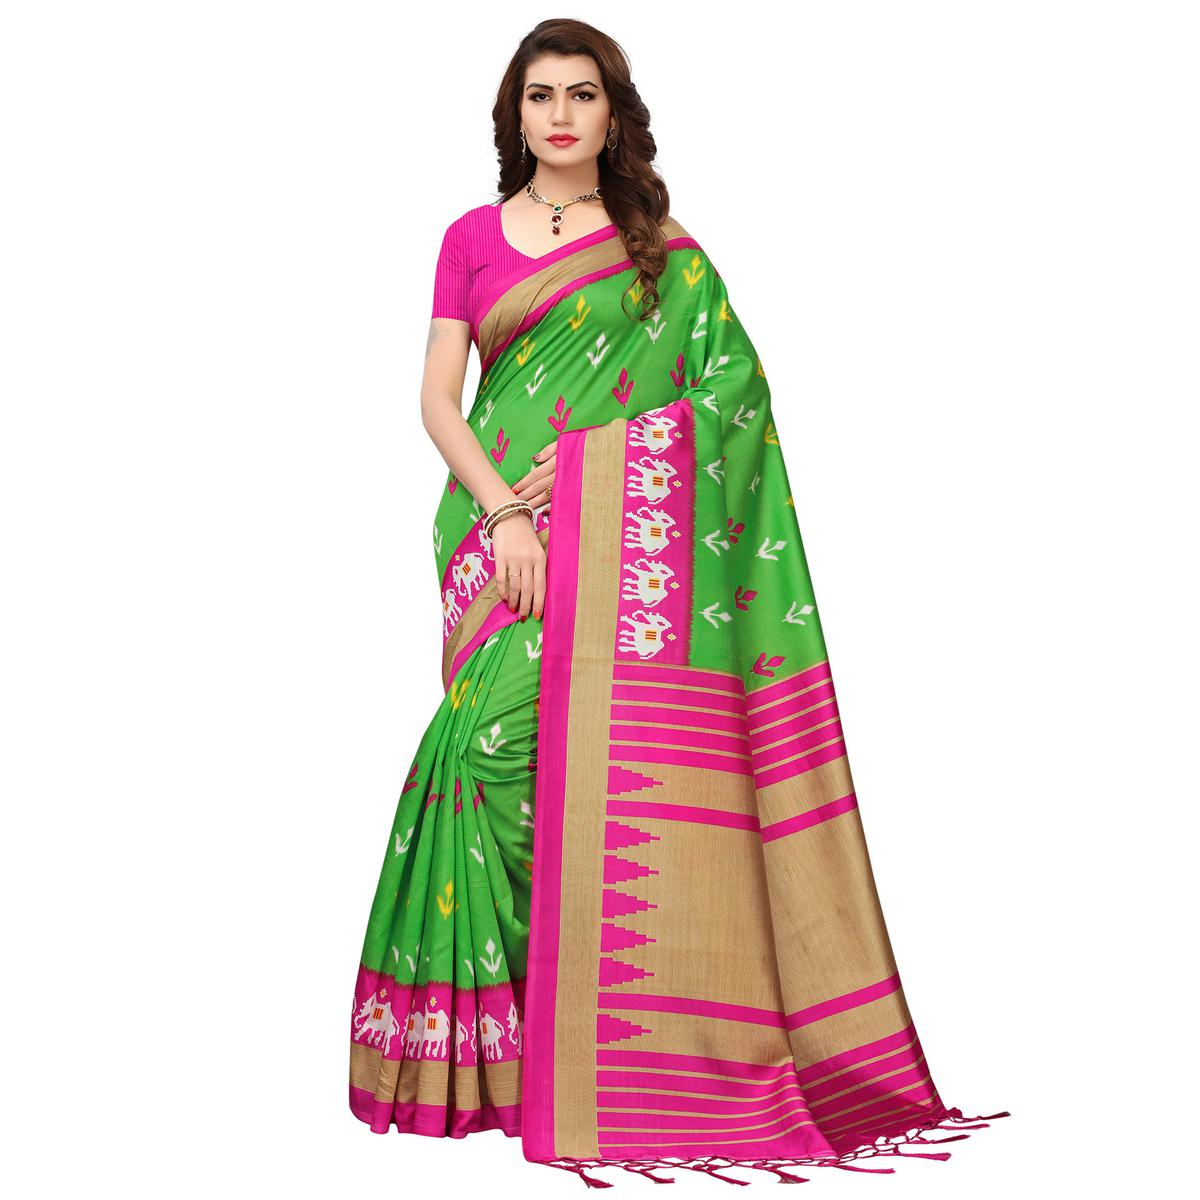 Charming Green-Pink Colored Printed Festive Wear Mysore Art Silk Saree